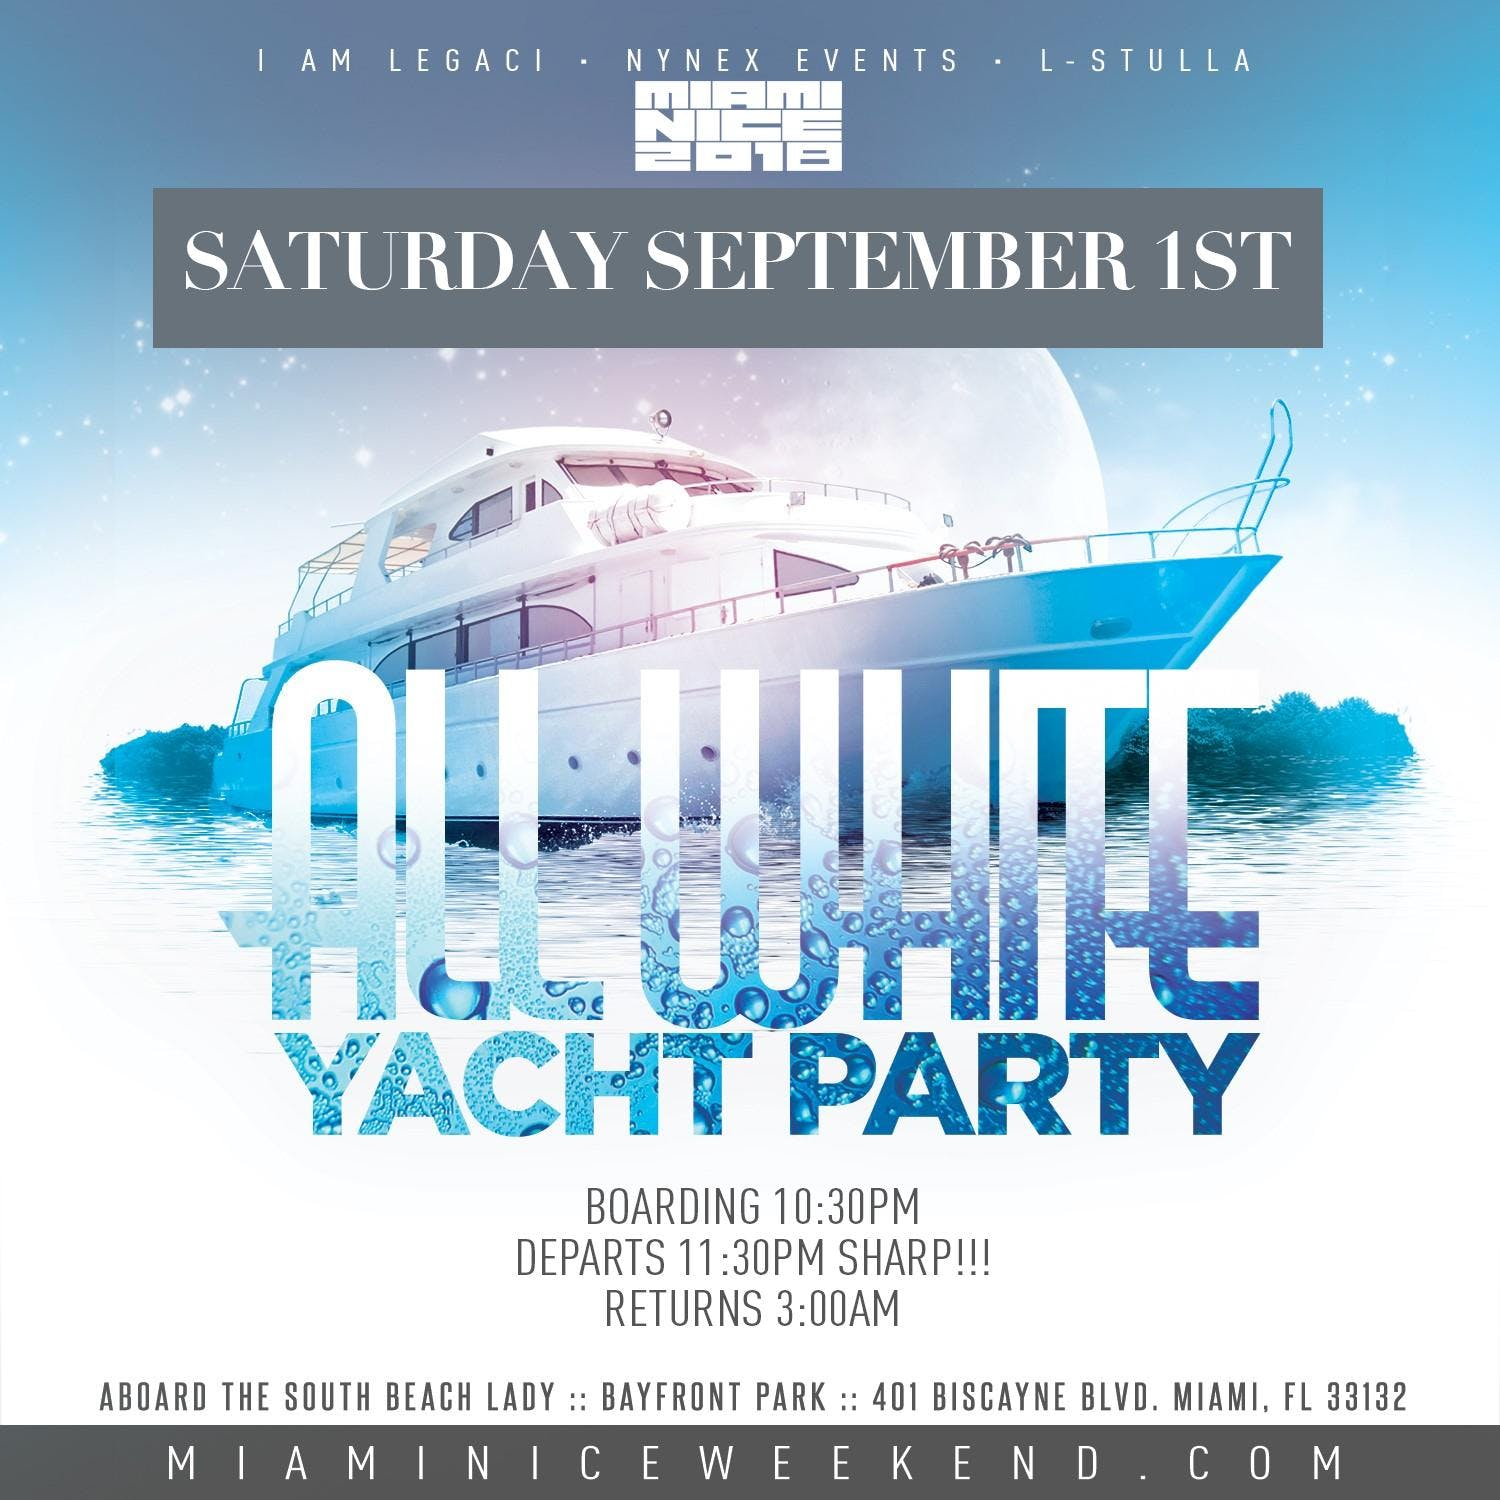 Miami Nice 2018 Annual Labor Day Weekend All White Yacht Party